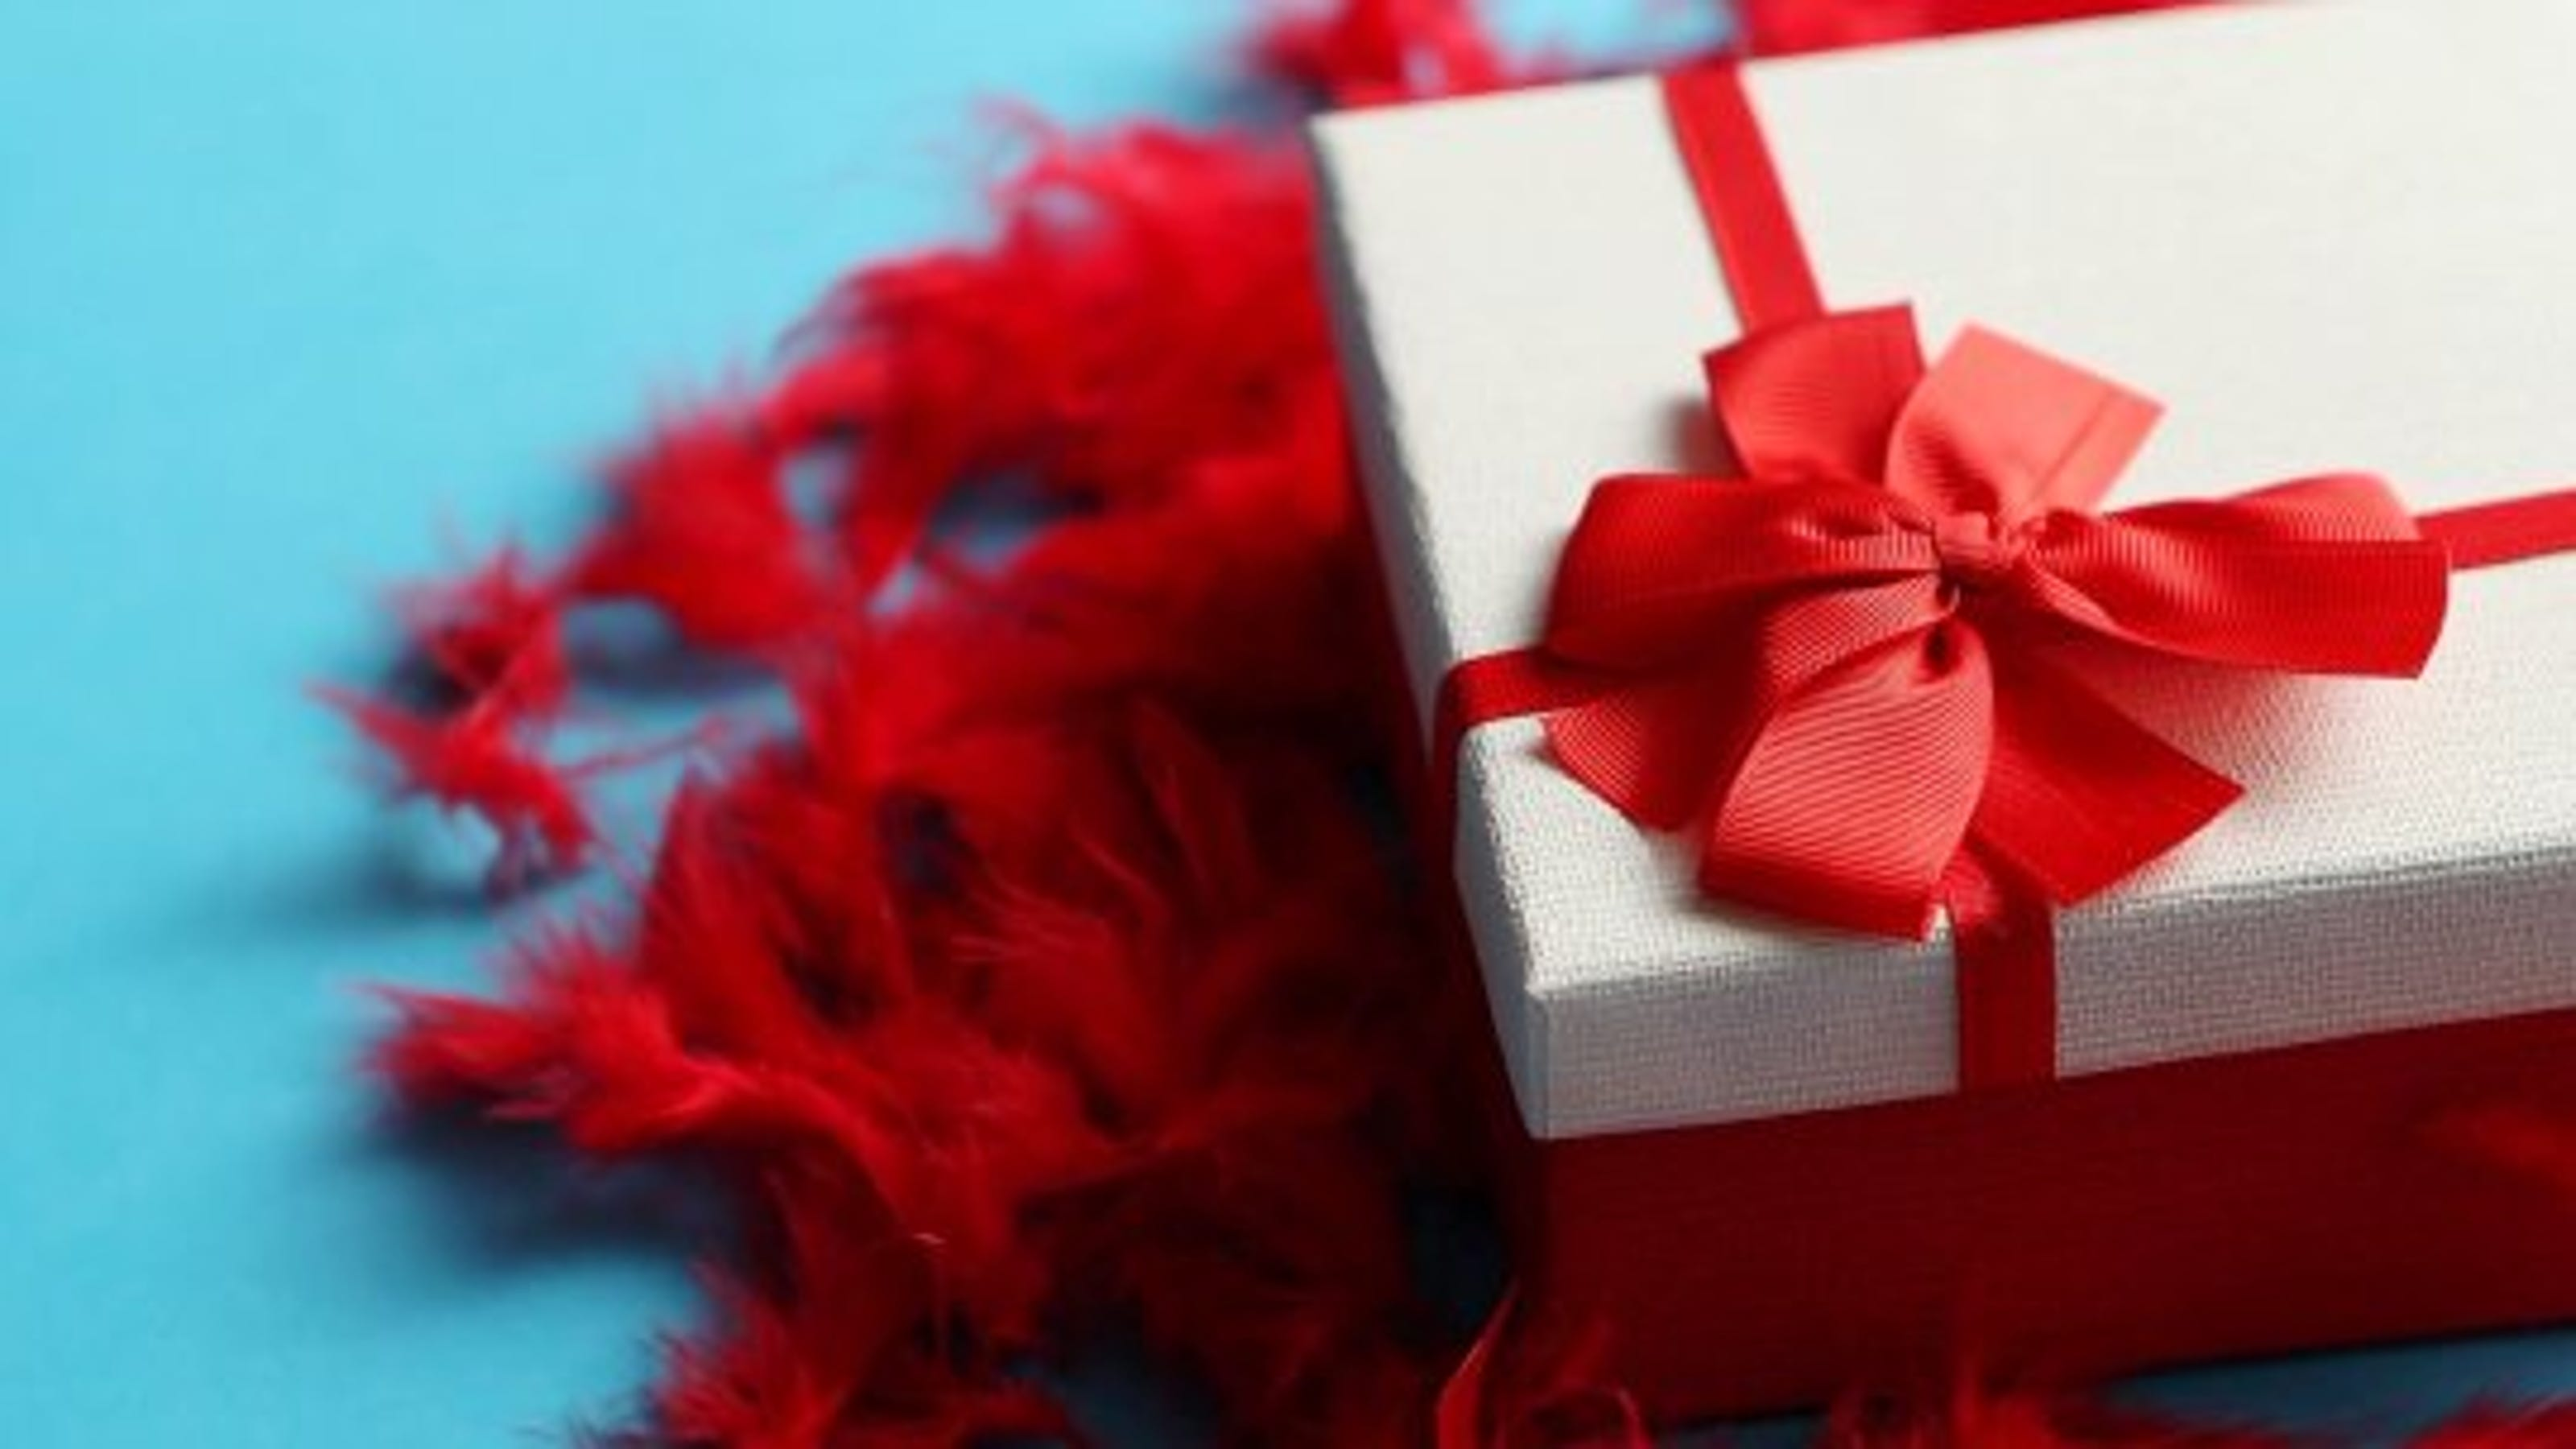 How Much Spend Wedding Gift: How Much Should You Spend On A Wedding Gift?